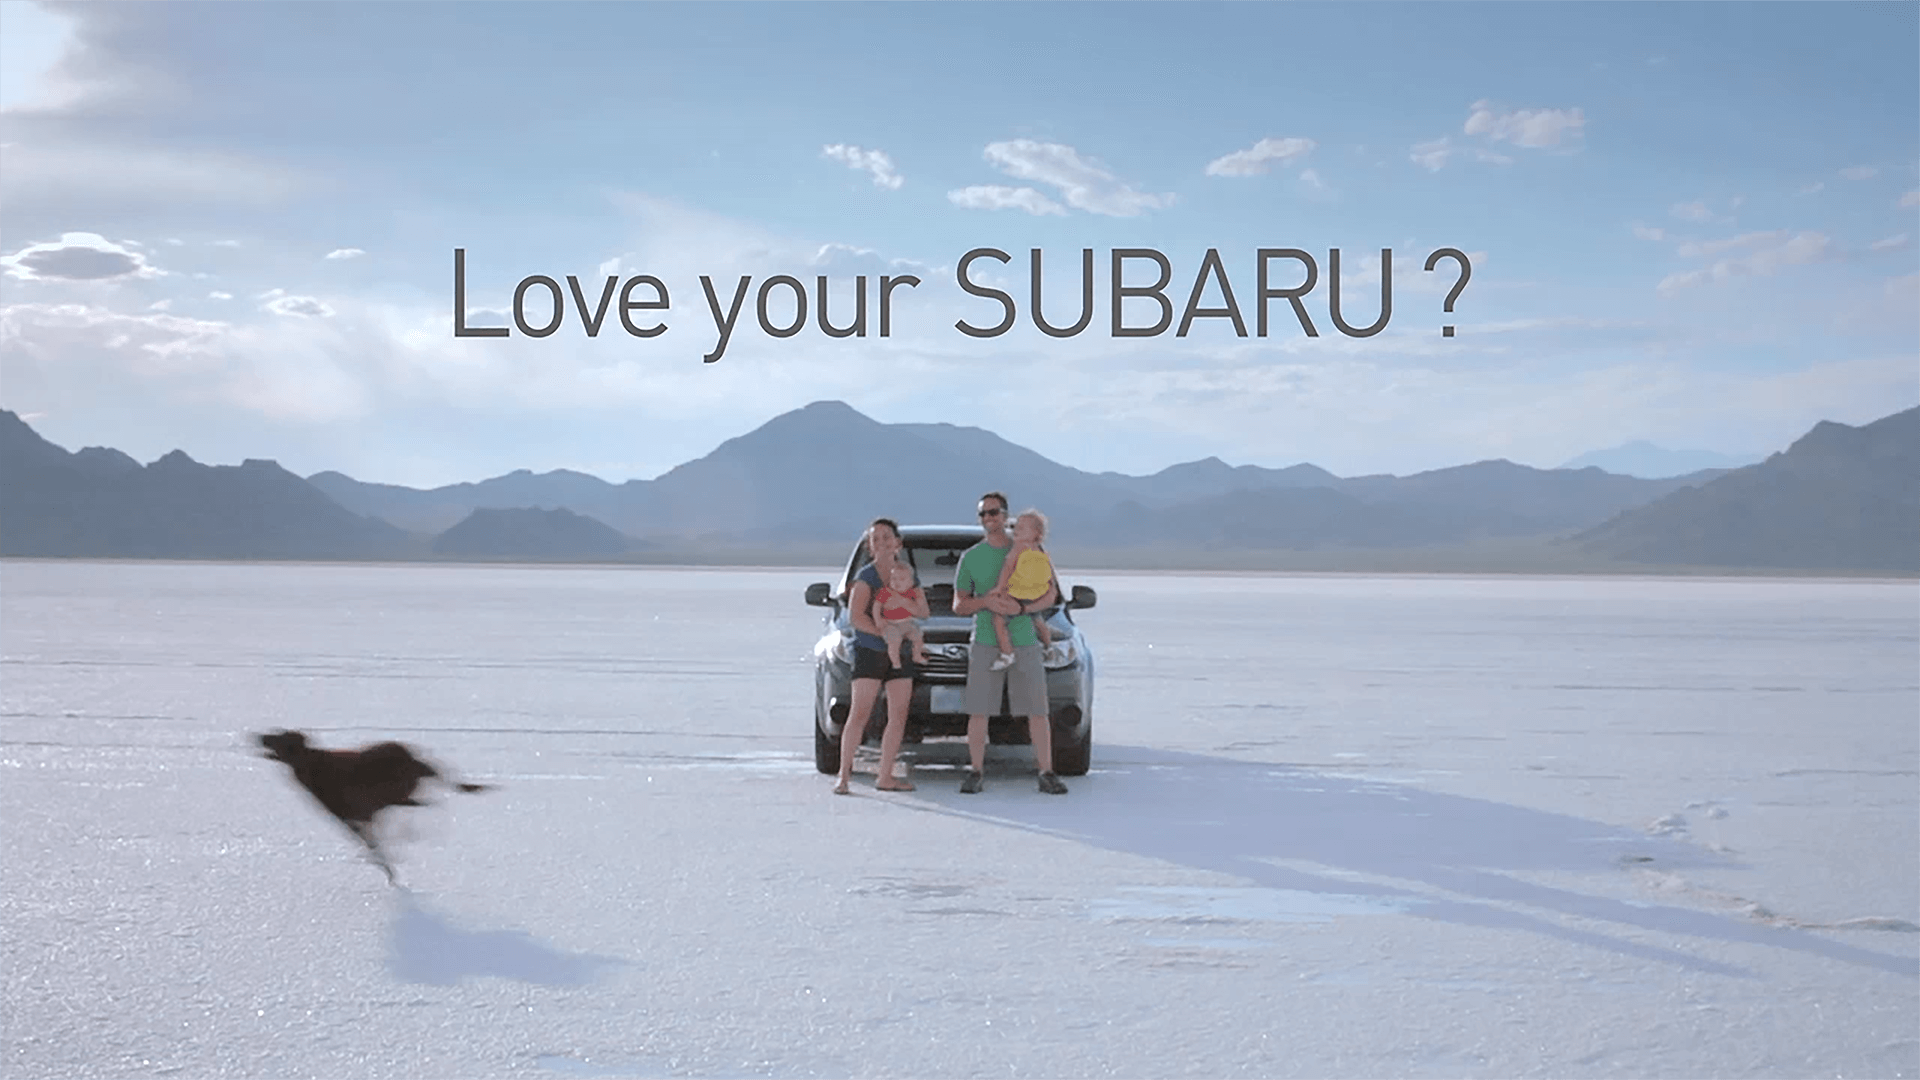 2 subaru 360 degree2